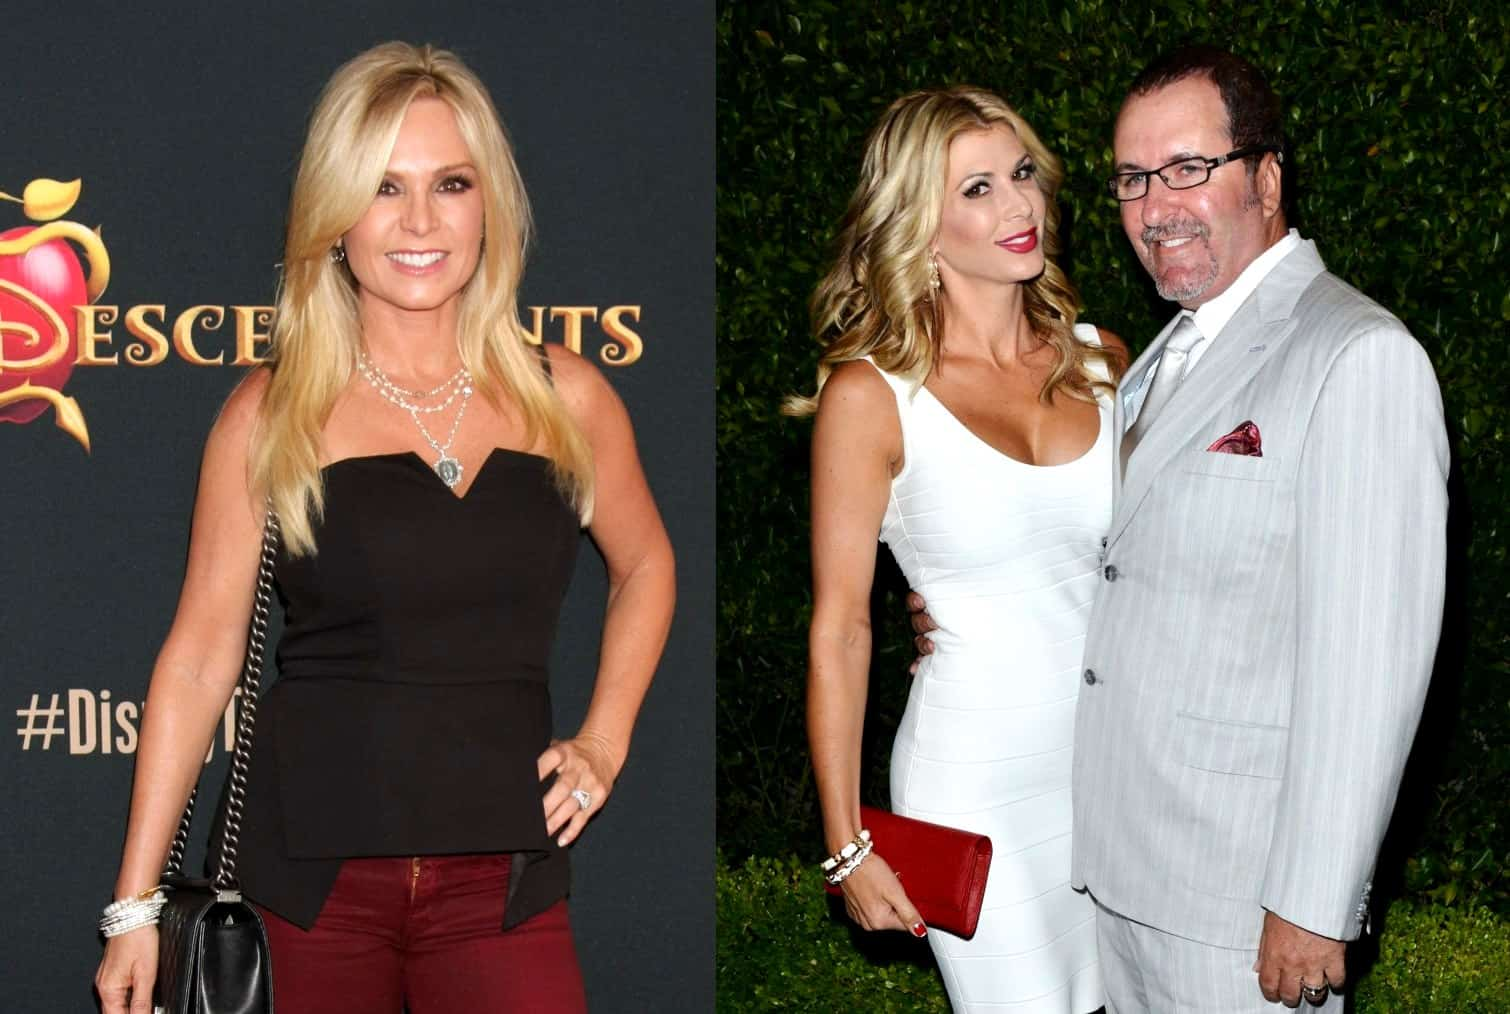 RHOC's Jim Bellino Slams